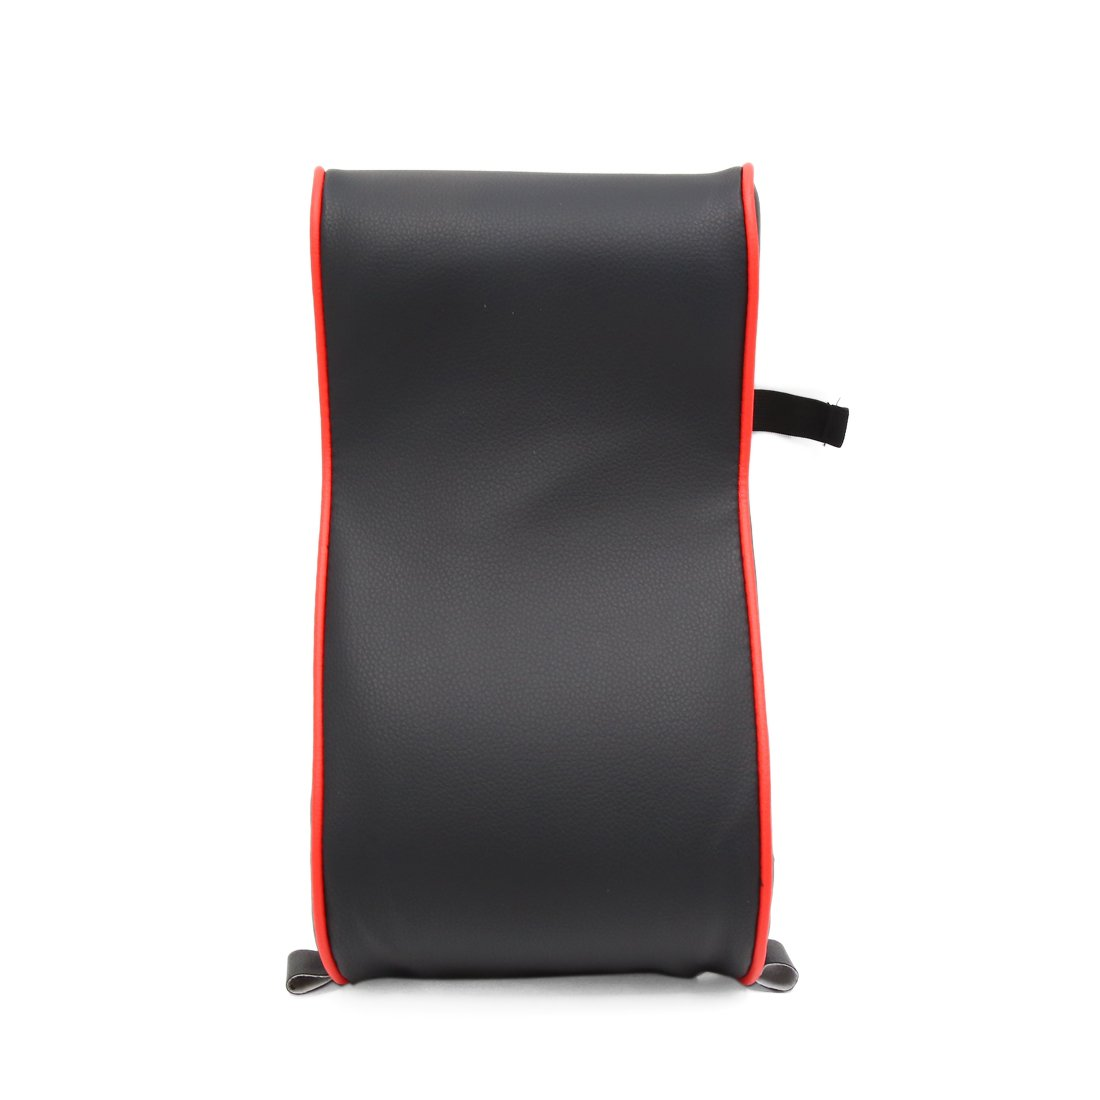 uxcell Black Red Faux Leather Universal Multifunctional Armrest Pad Cushion for Car SUV